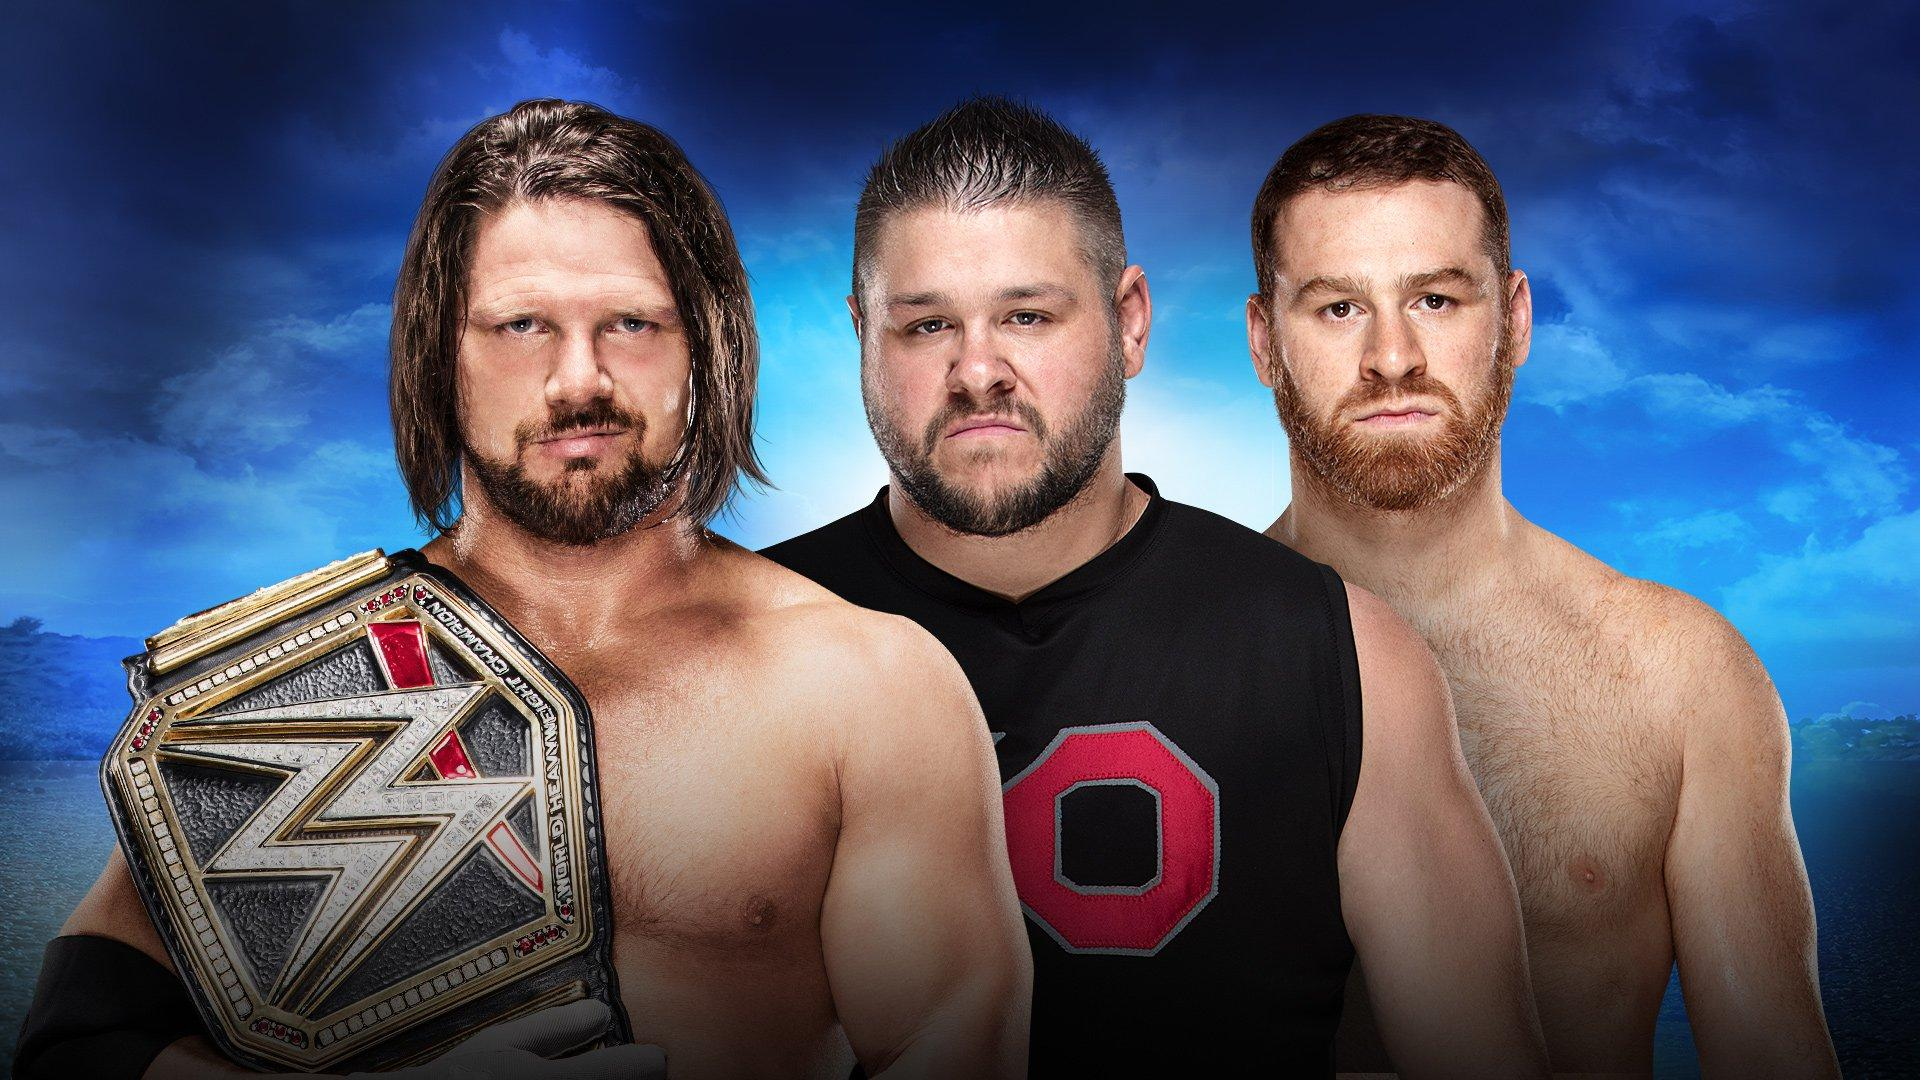 Royal Rumble 2018 SD Live 2 on 1